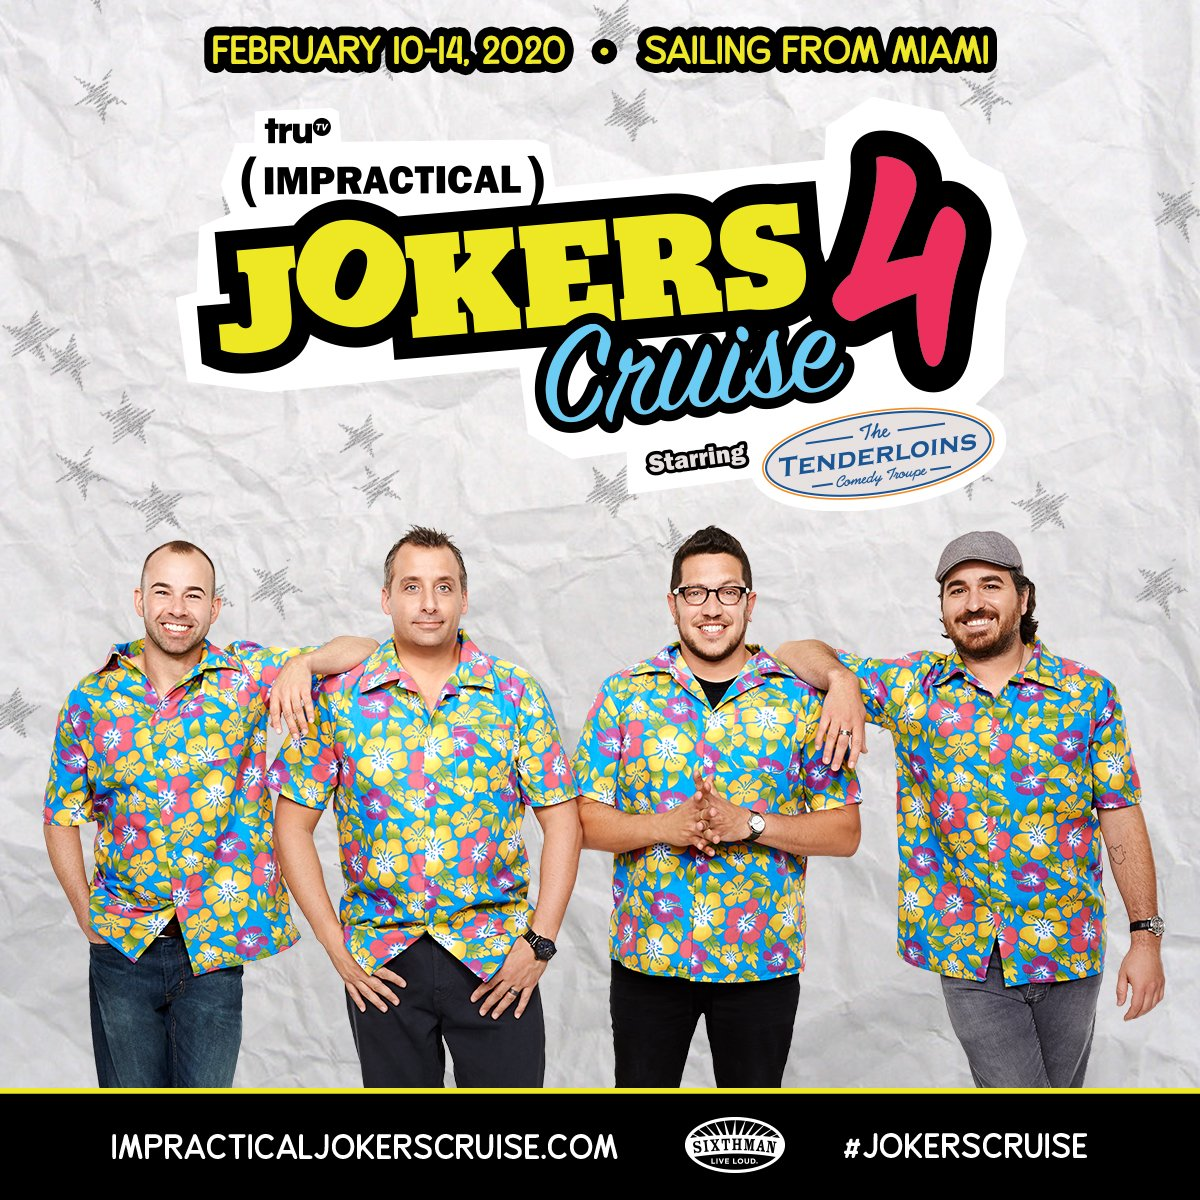 That's a wrap on the Impractical Jokers Cruise 3. After another comical adventure at sea, The Tenderloins are thrilled to announce they are setting sail again February 10-14, 2020!   Don't miss the boat and join the pre-sale today! #JokersCruise